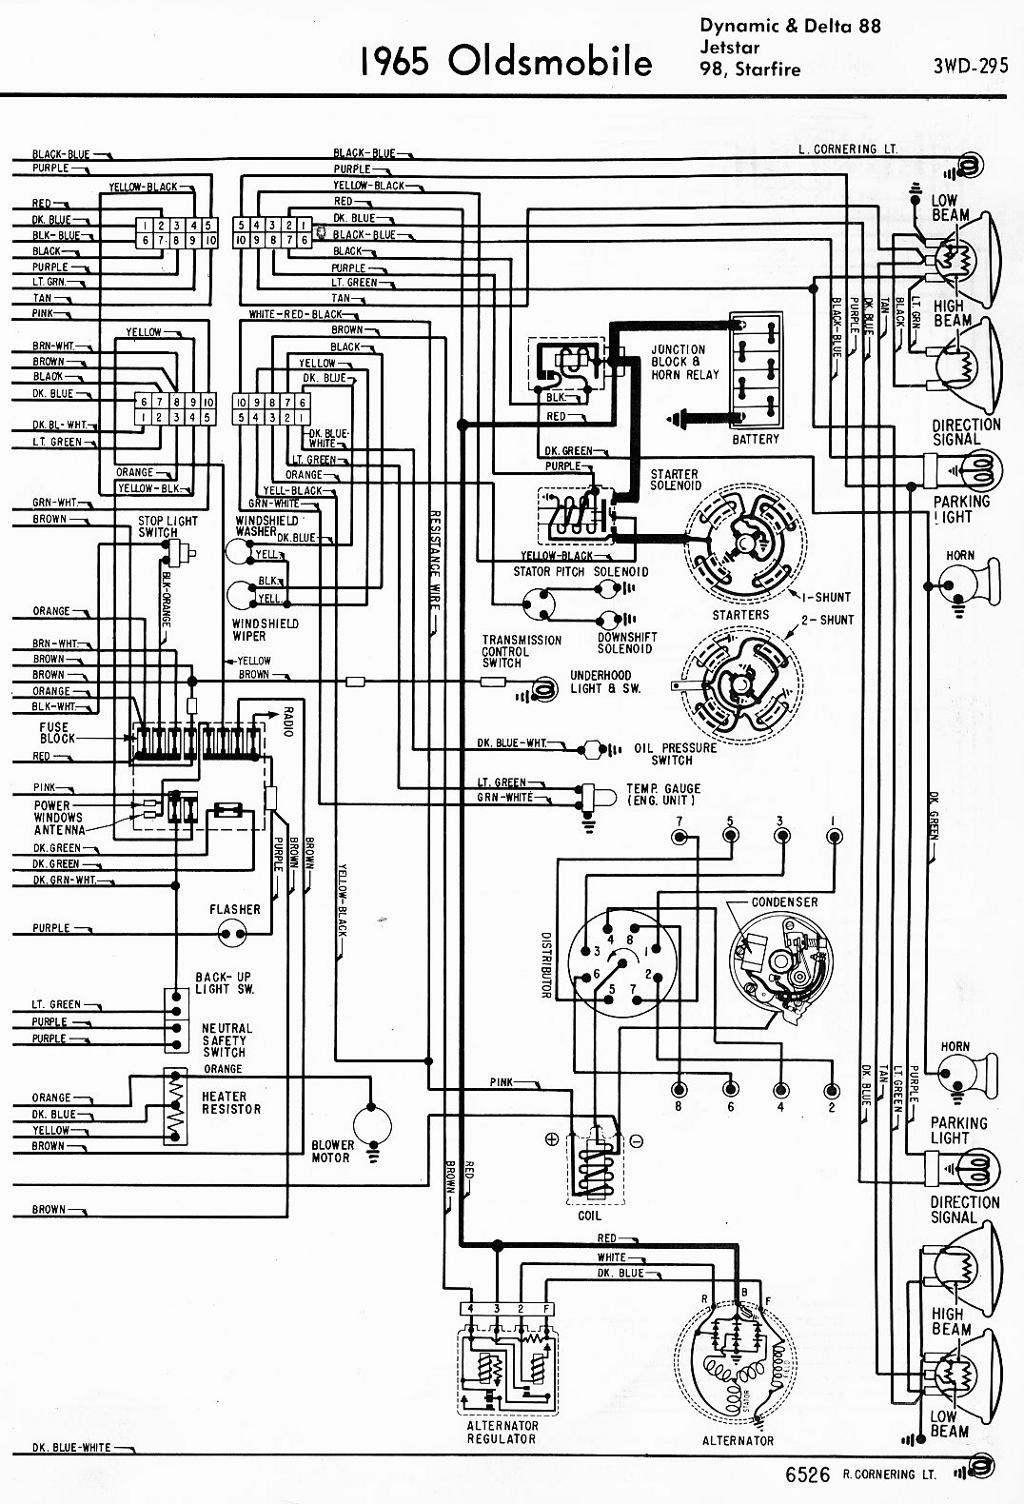 12 Volt Light Wiring Diagram 1965 Gmc - Circuit Wiring And Diagram Hub •